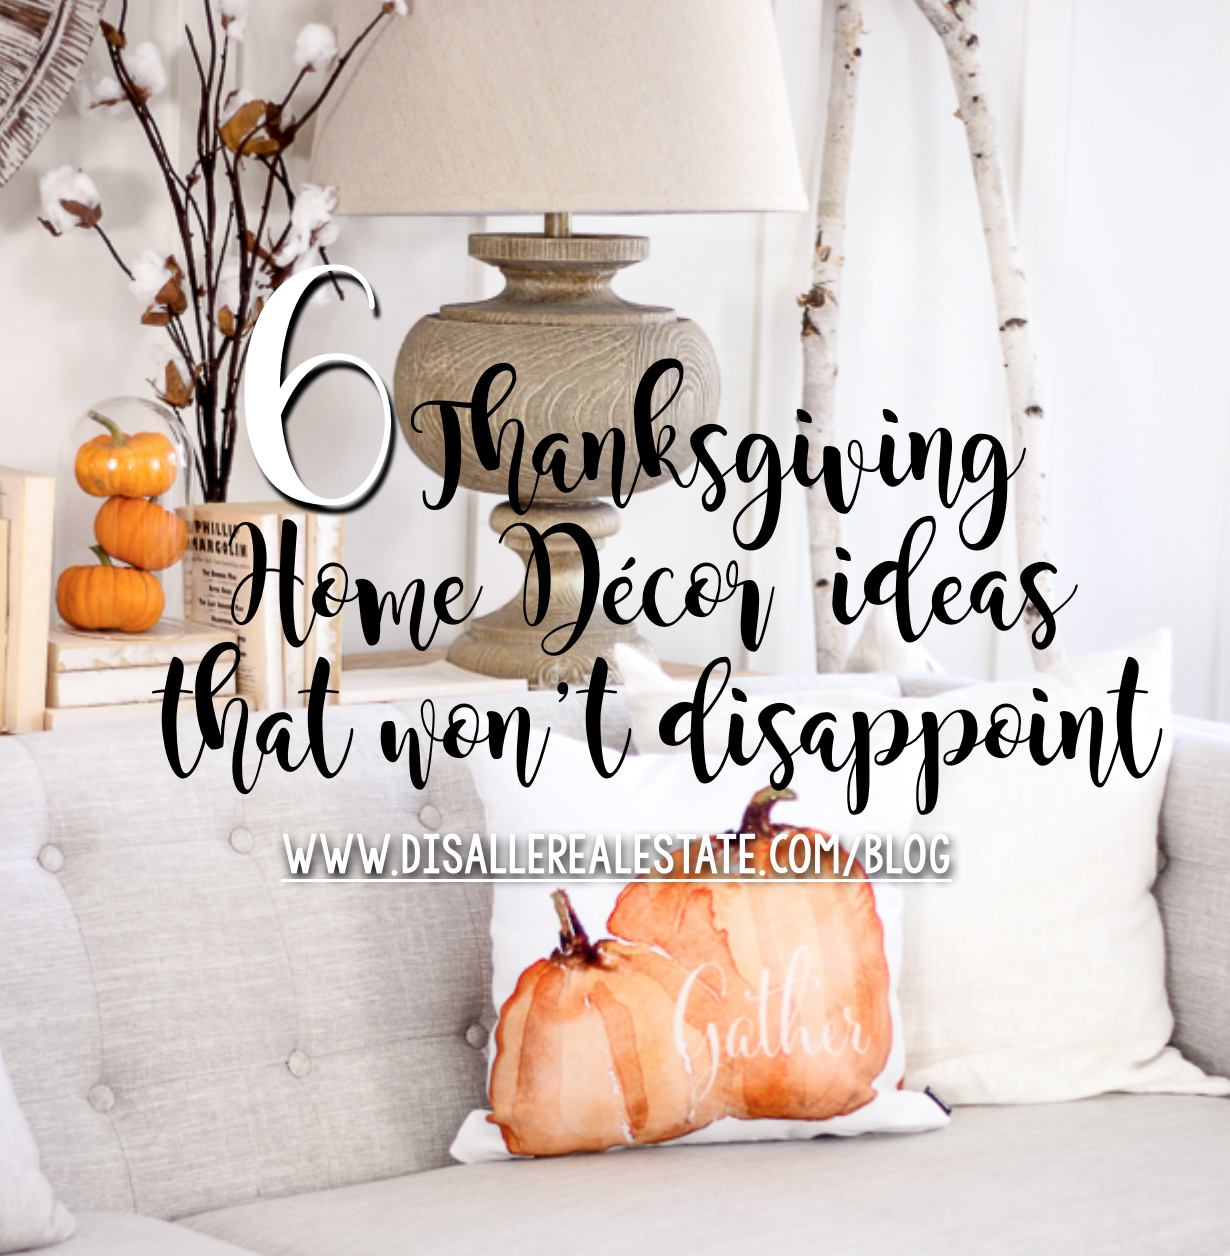 6 Pinterest Thanksgiving Home Decor Ideas That Won't Disappoint